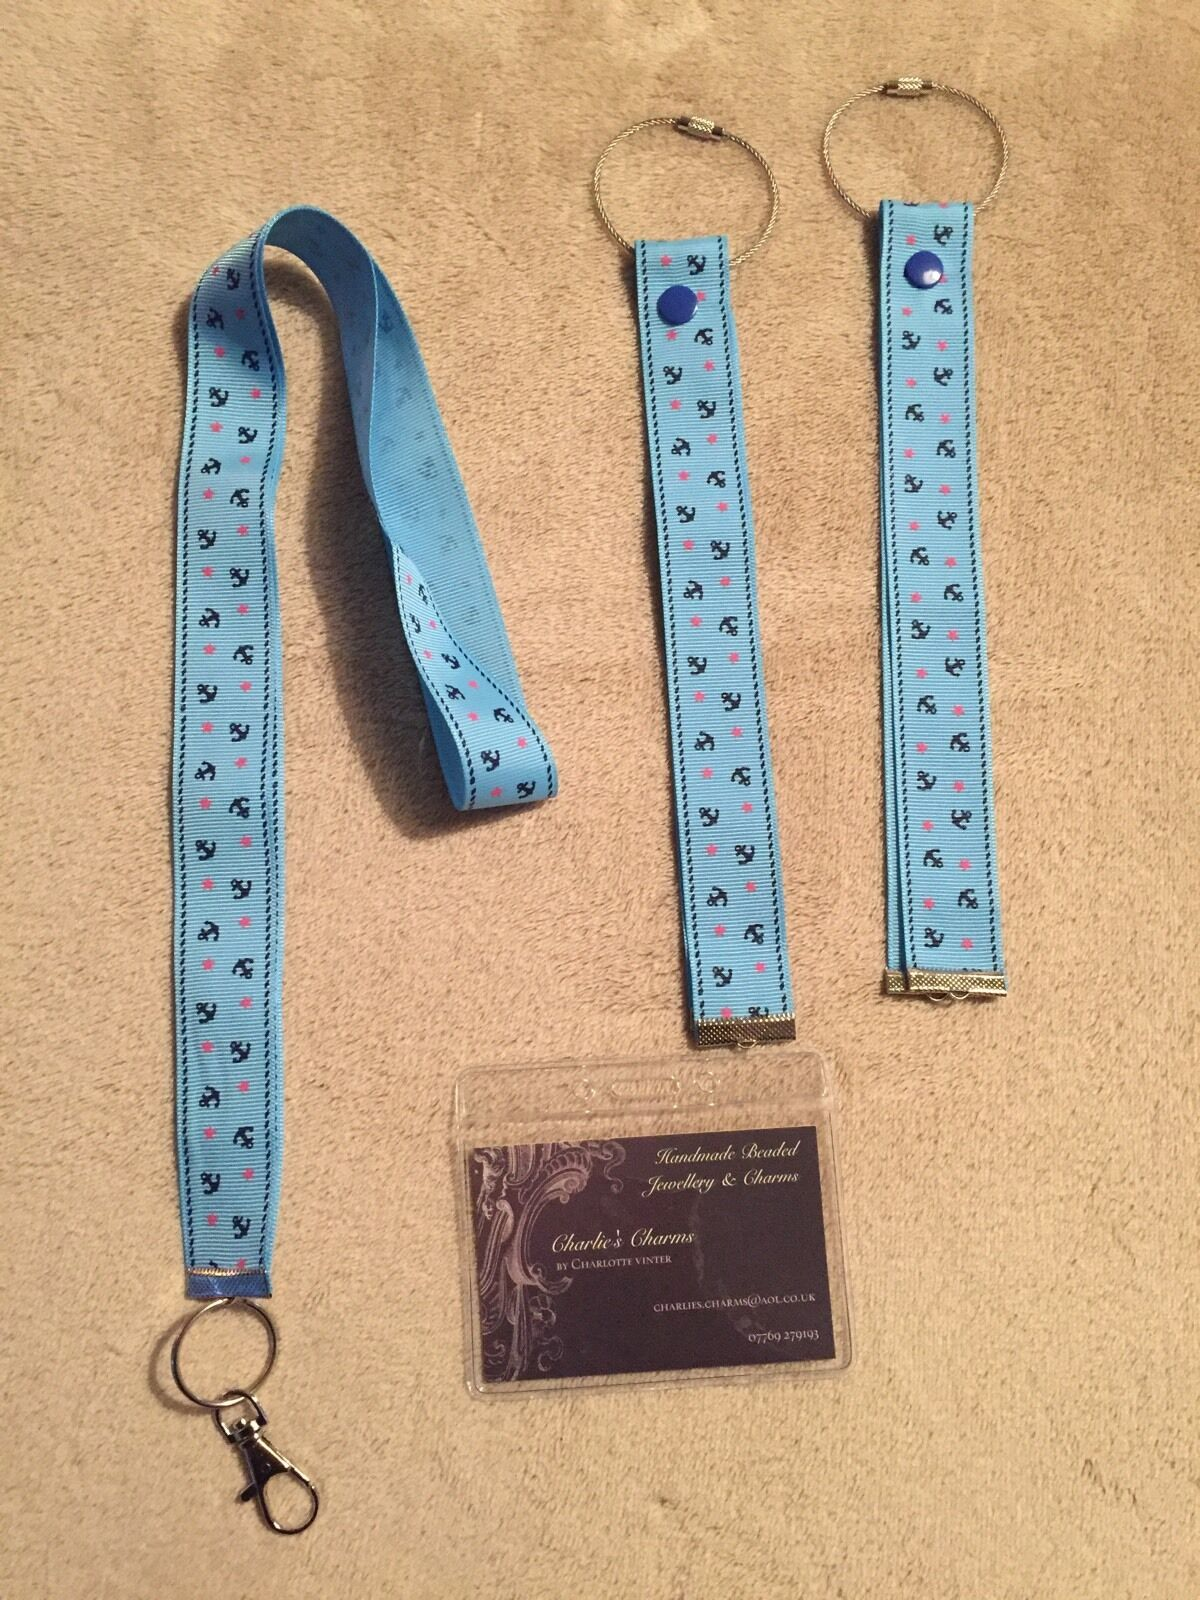 Cruise Card Holder & Matching Luggage Ribbons In Gorgeous Pale Blue Anchor Print